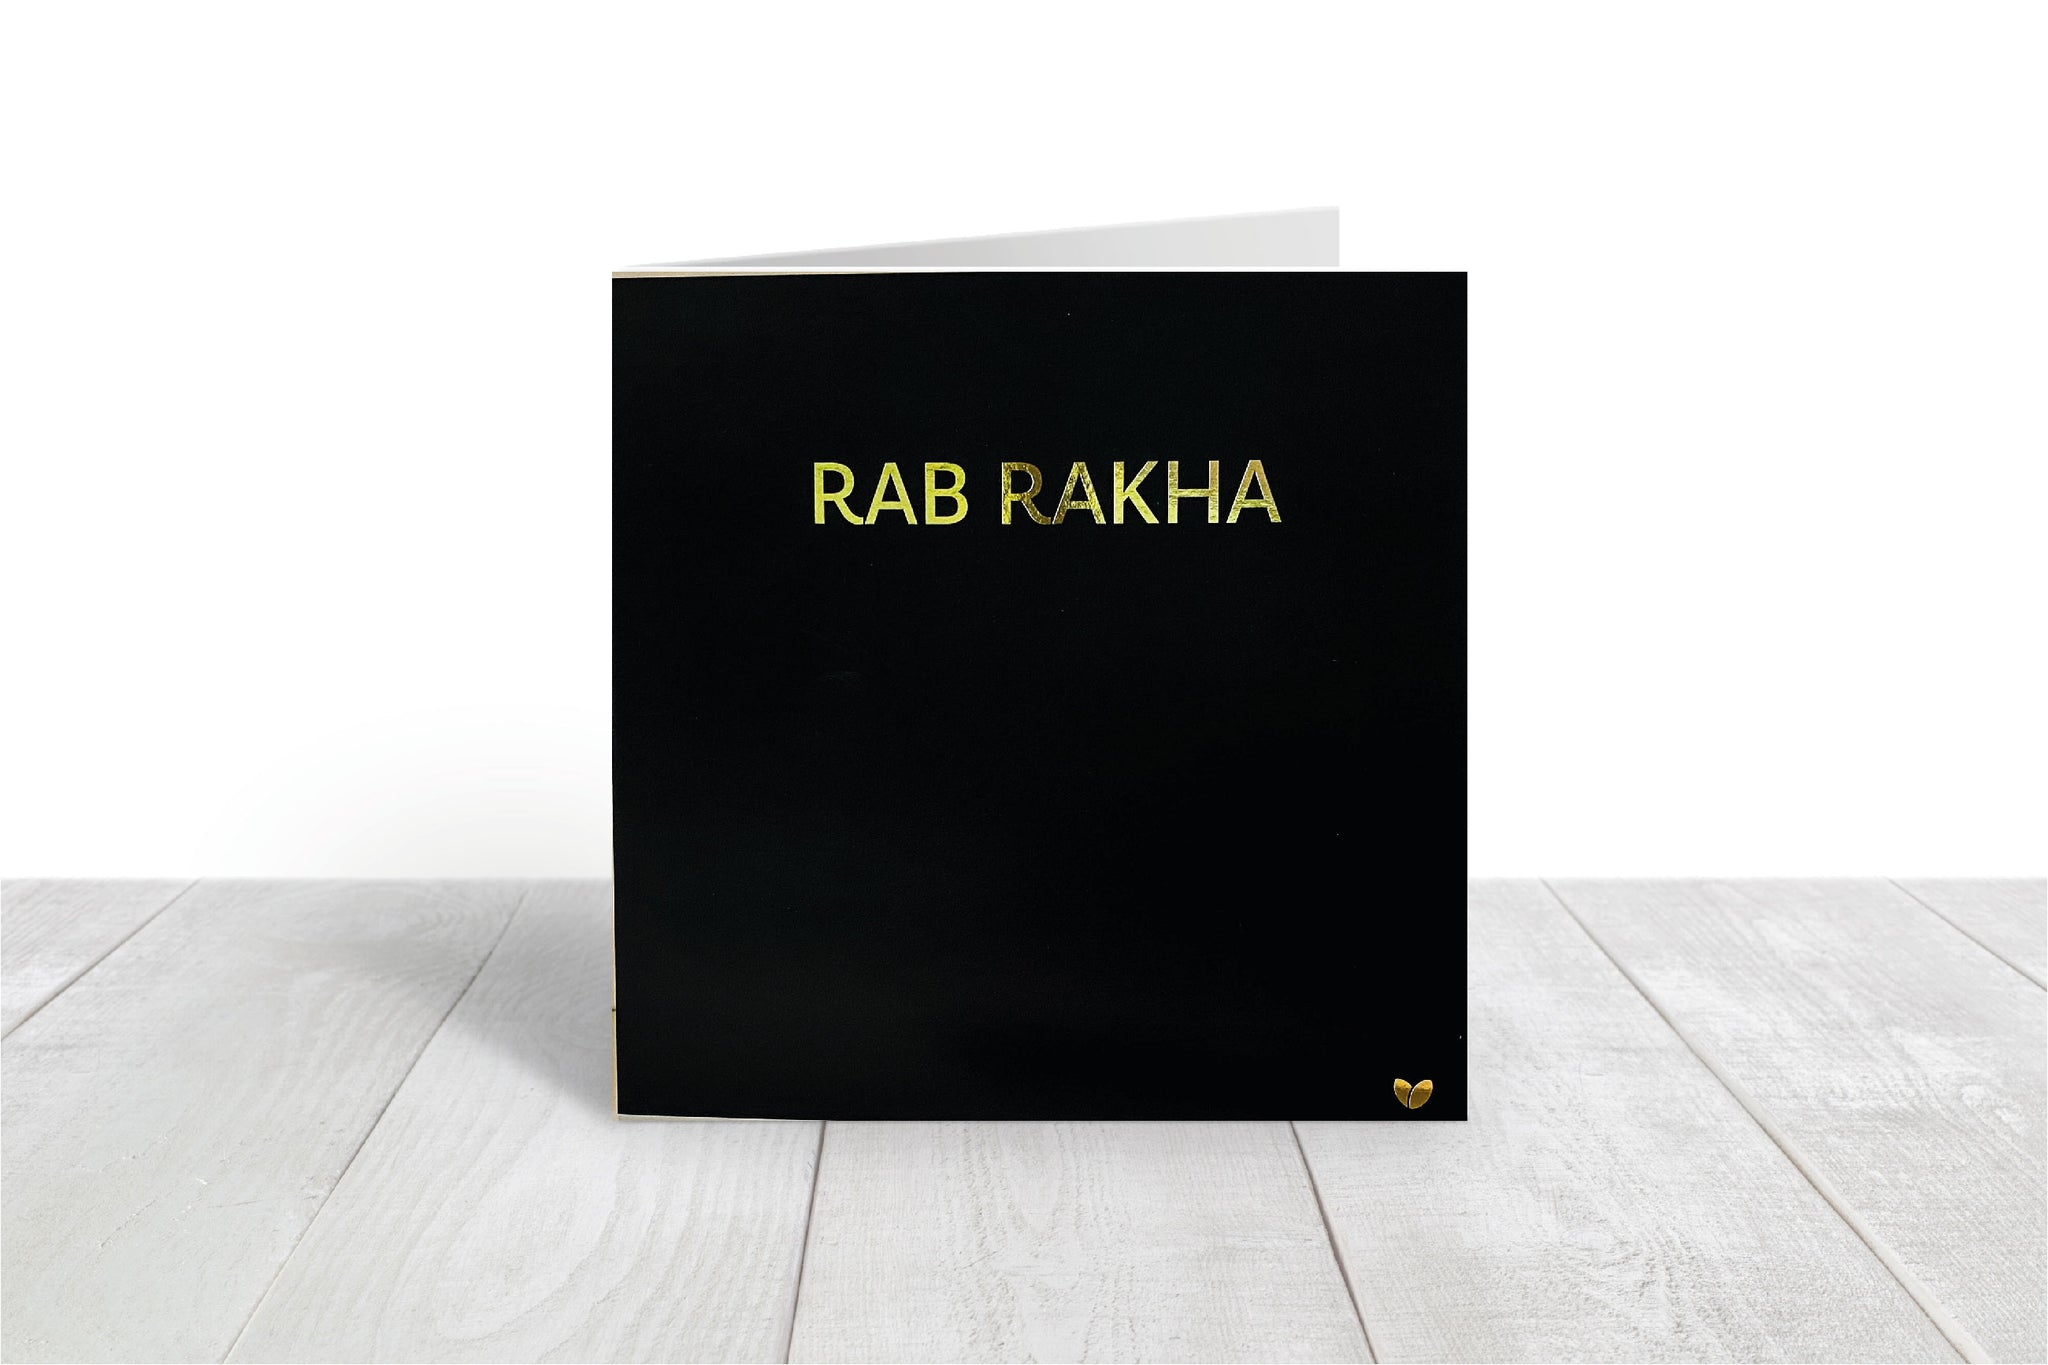 Rab rakha greeting card - Sikh quotes - Punjabi greeting card - May God Protect you